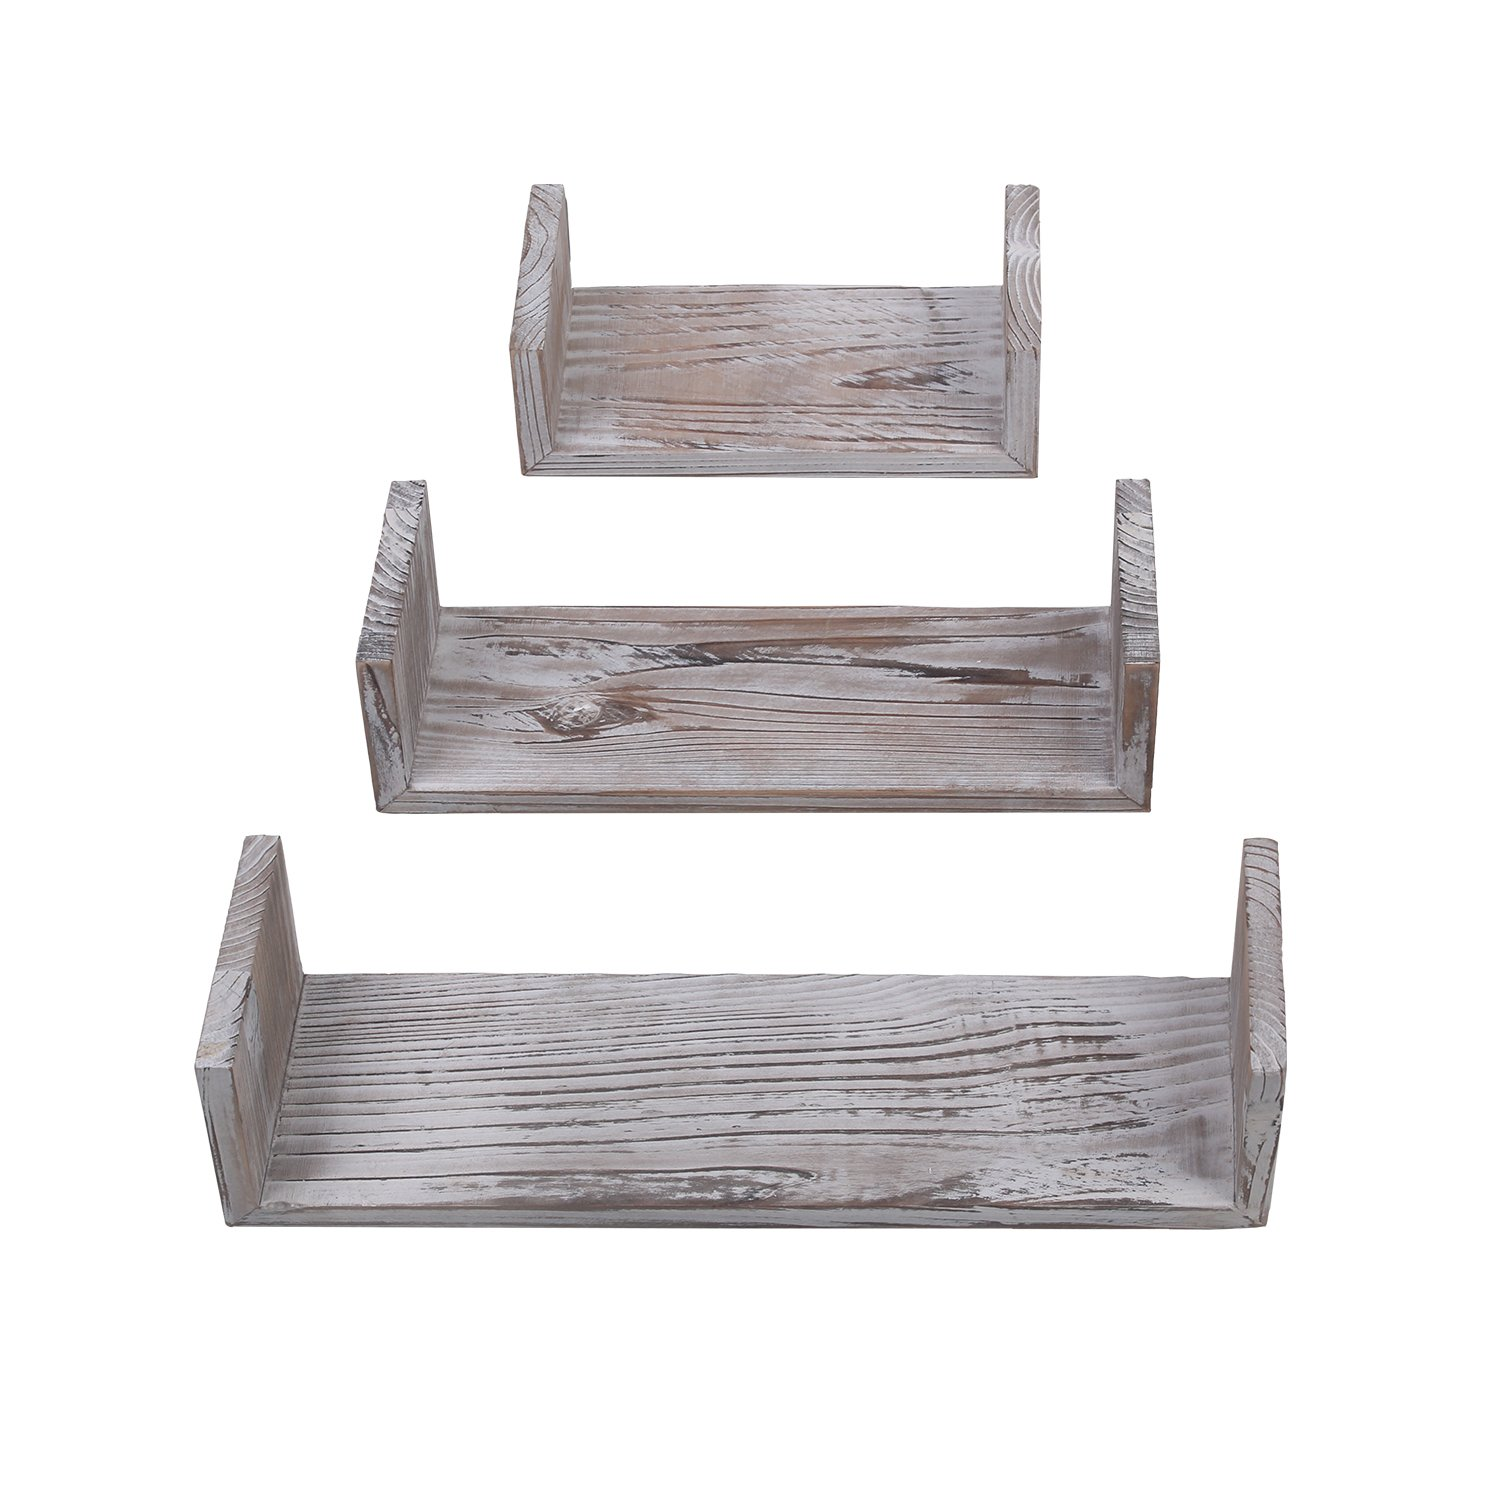 Yankario Rustic Floating Shelves Wall Mounted Set of 3, Torched Wood Farmhouse Storage Shelf for Bathroom, Kitchen, Bedroom, Living Room, Office and More